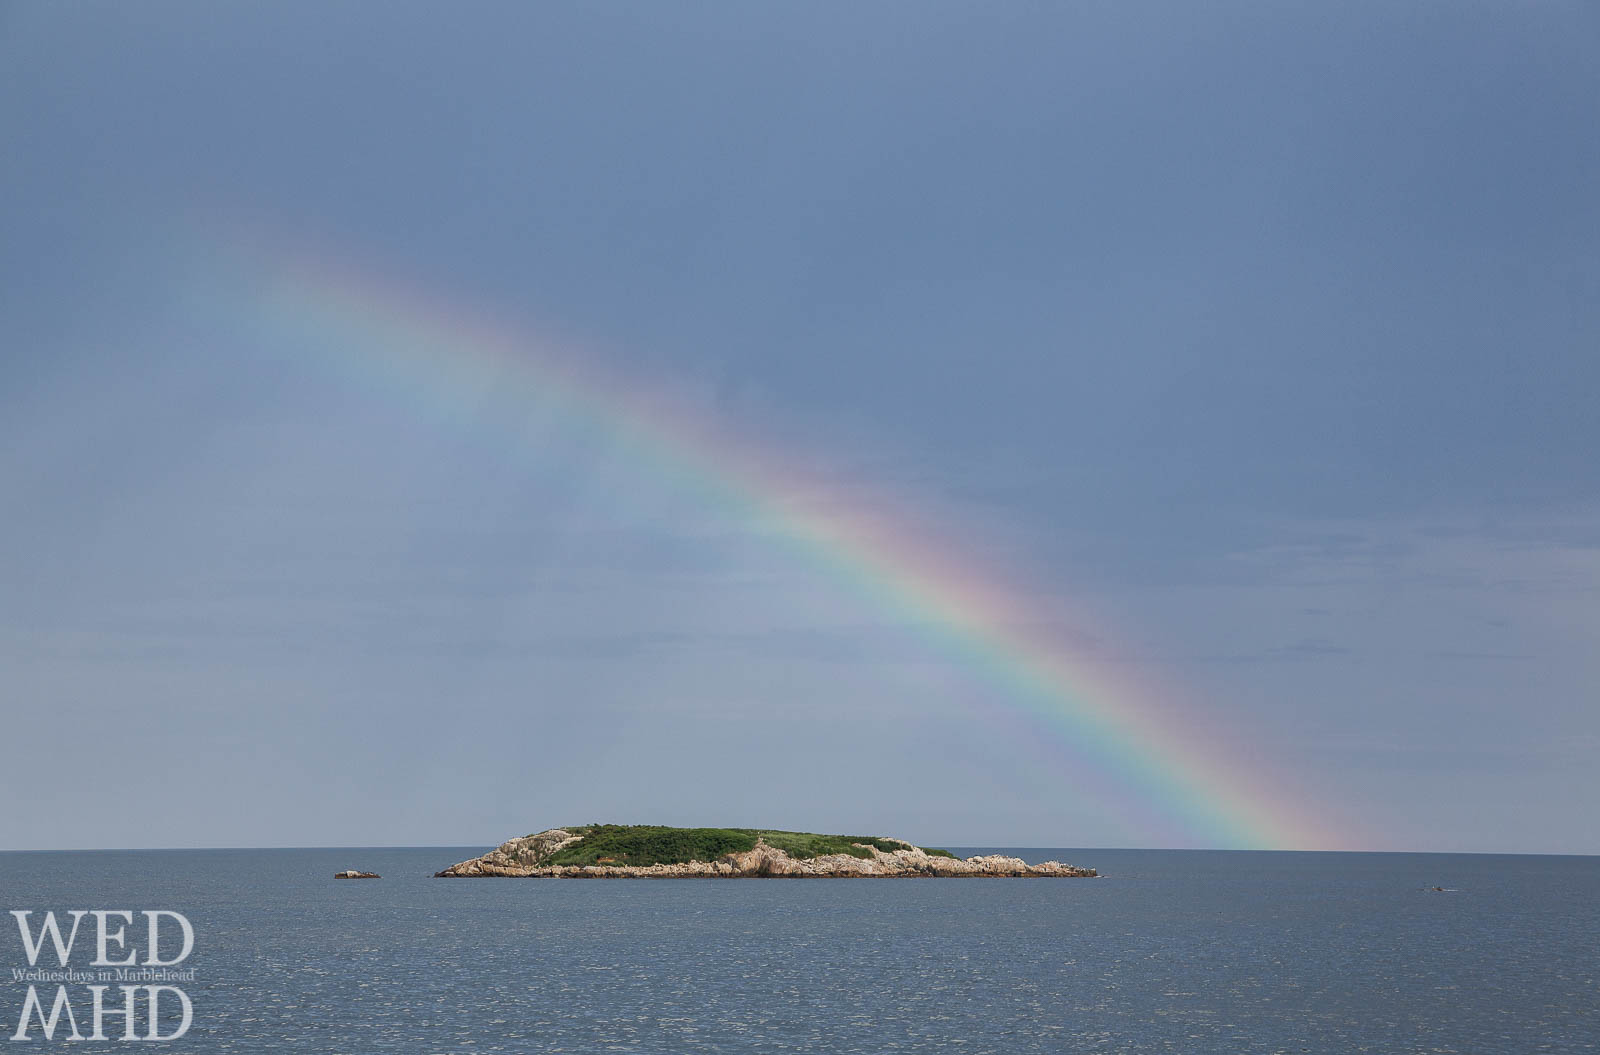 A midsummer rainbow forms over Ram's Island off Marblehead